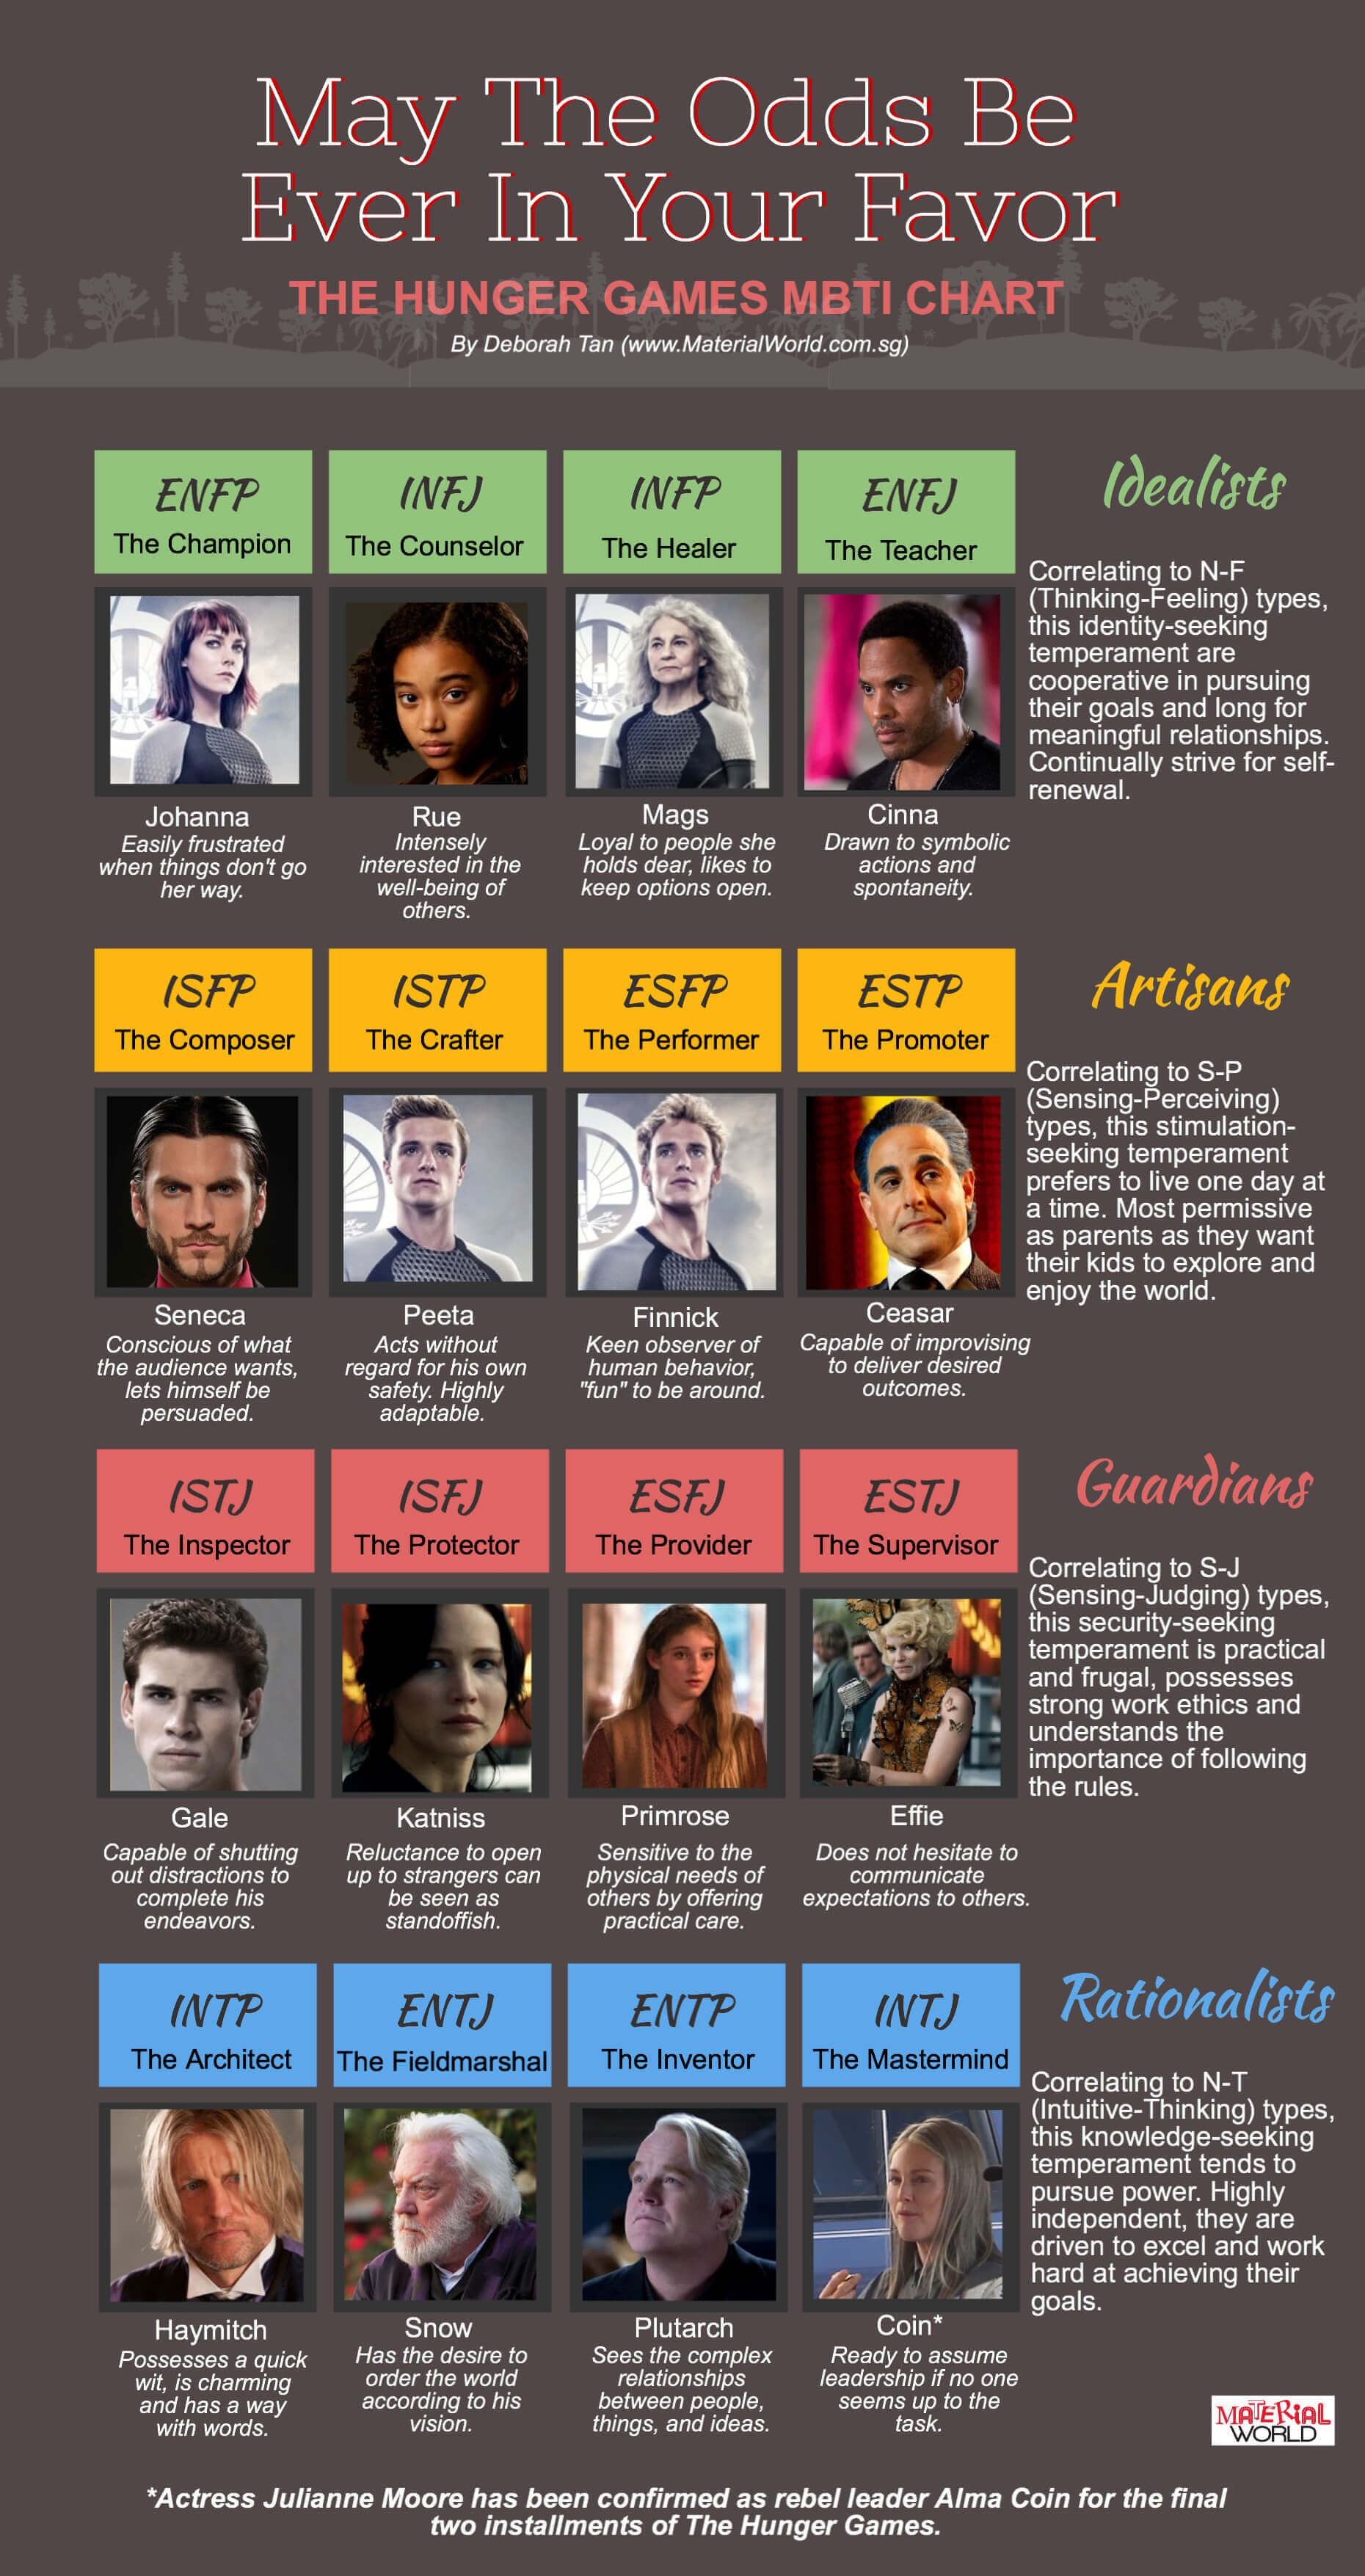 Roman The Hunger Games: author, main characters, plot 37